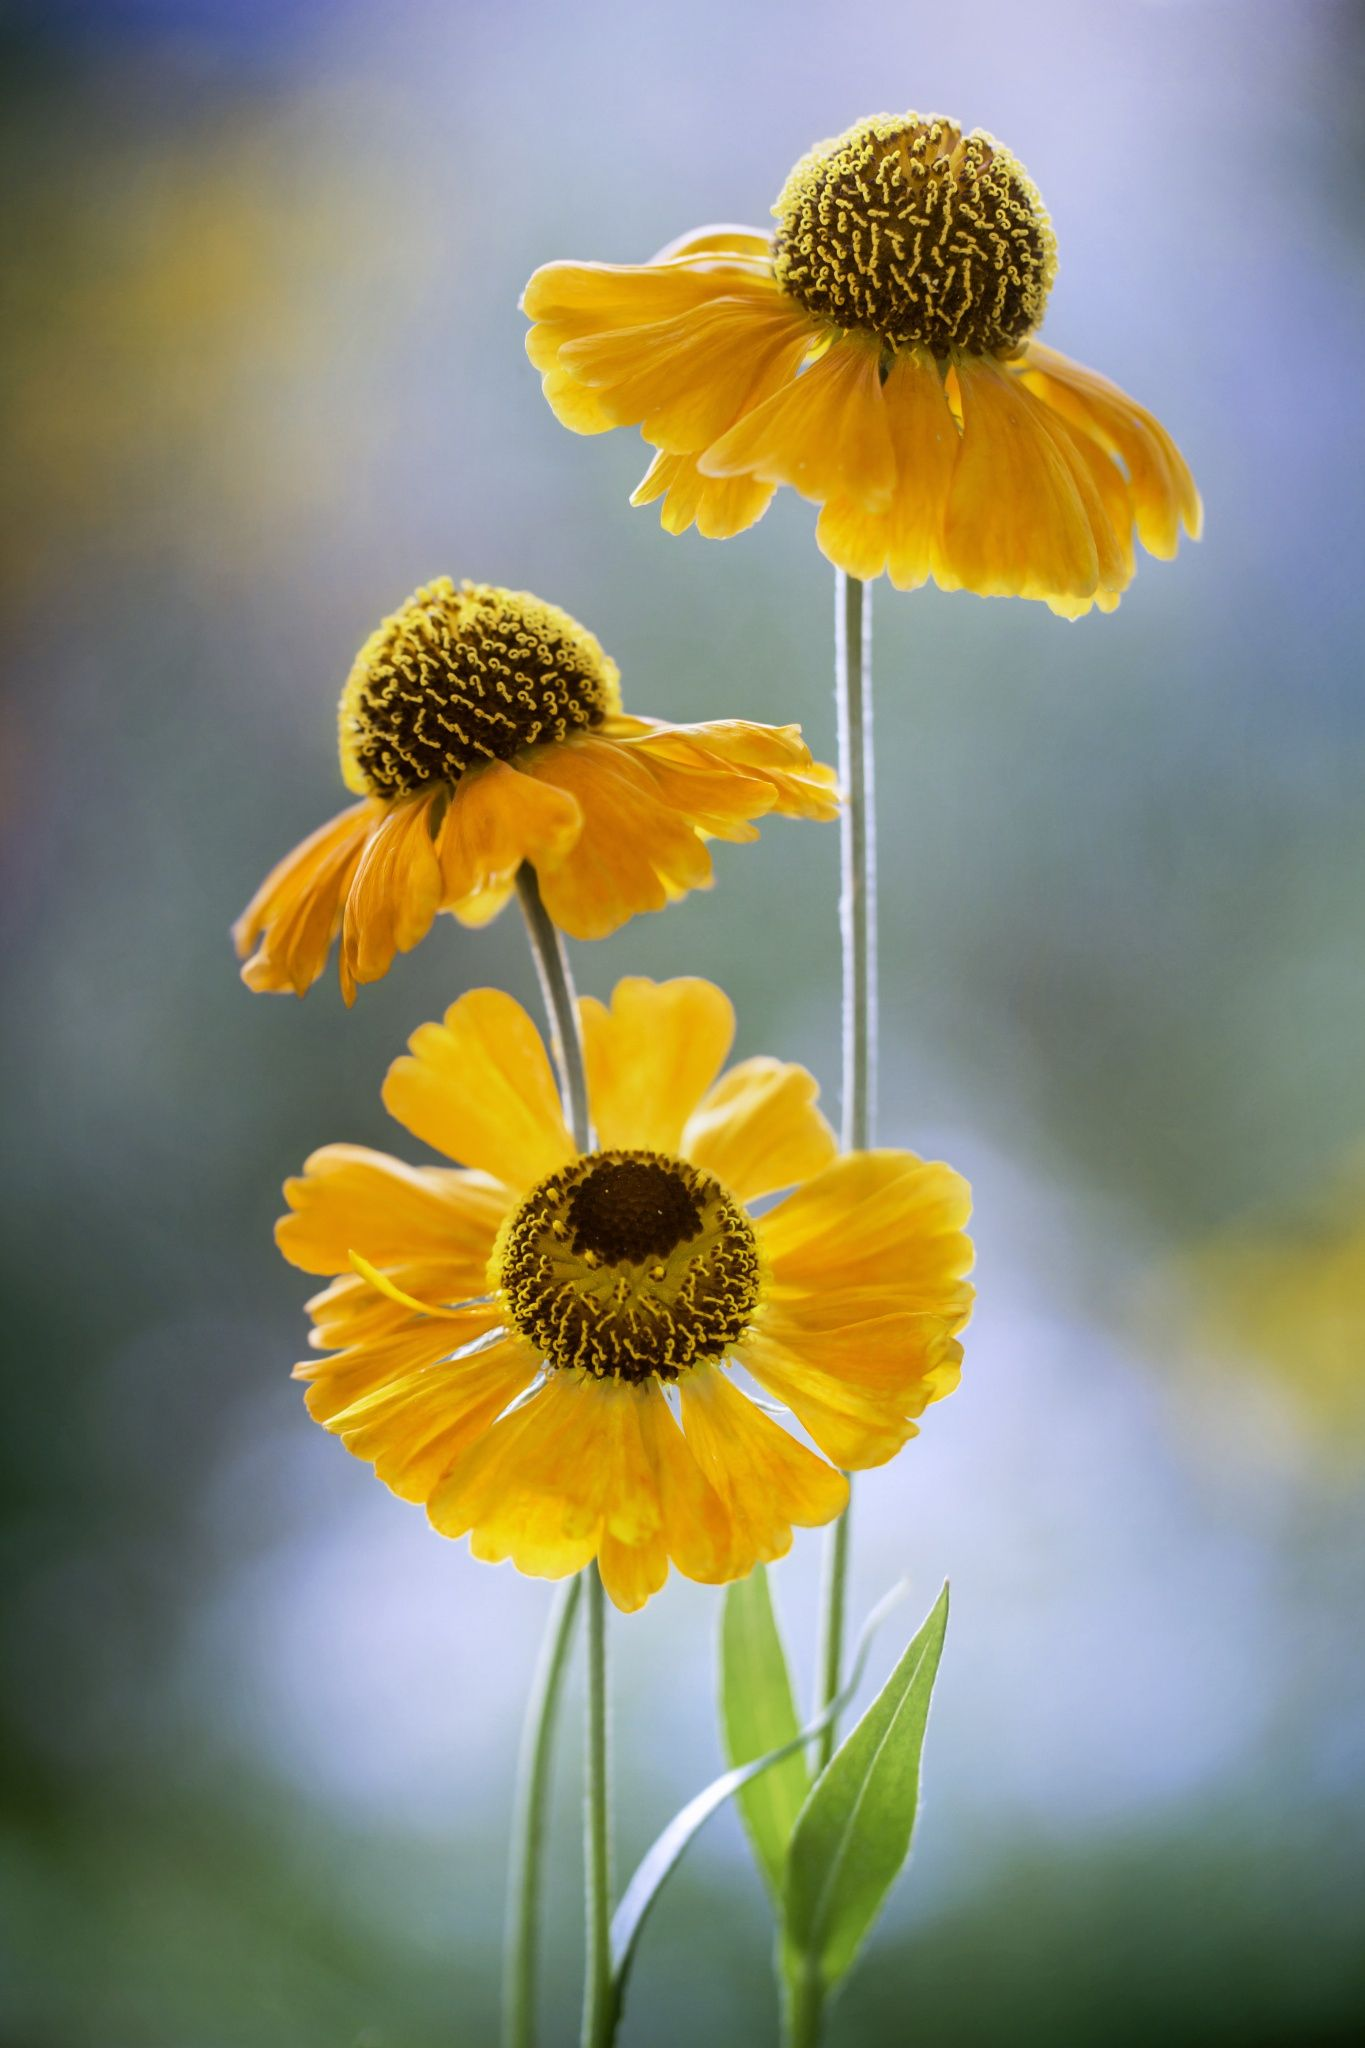 Helenium by Mandy Disher on 500px